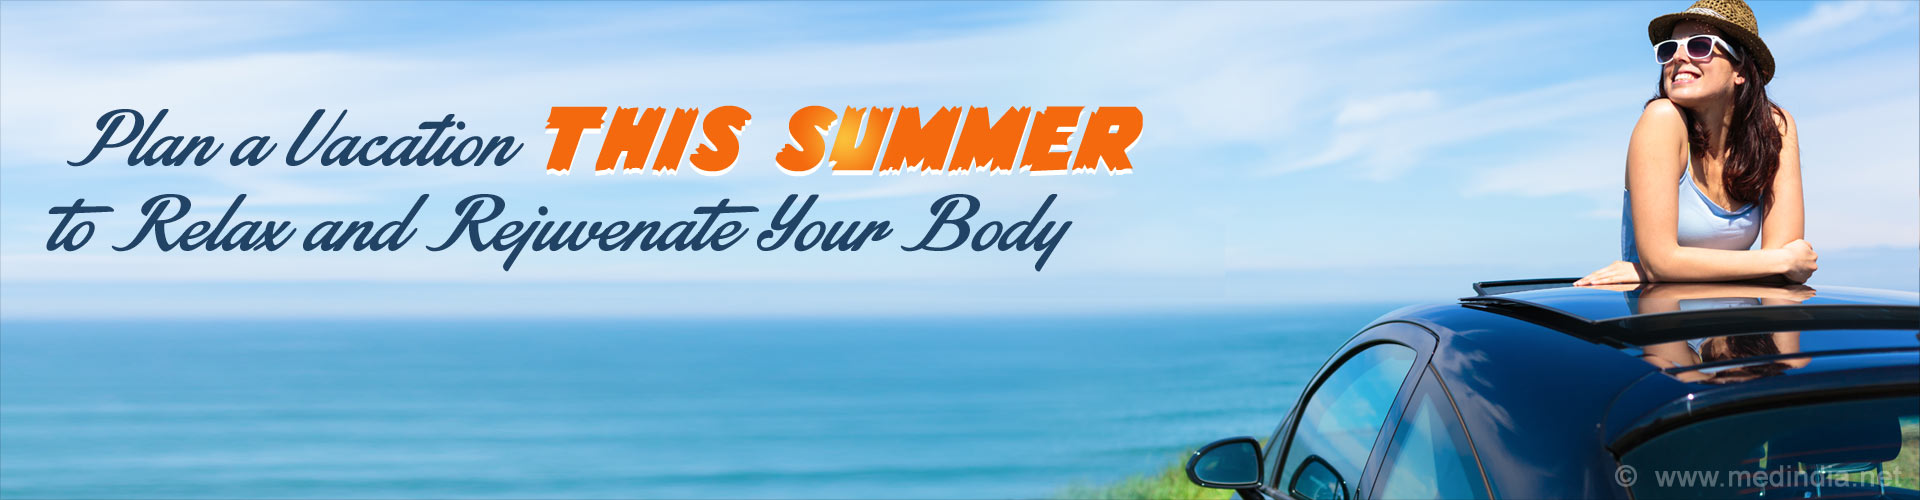 Plan a Vacation This Summer to Relax and Rejuvenate Your Body